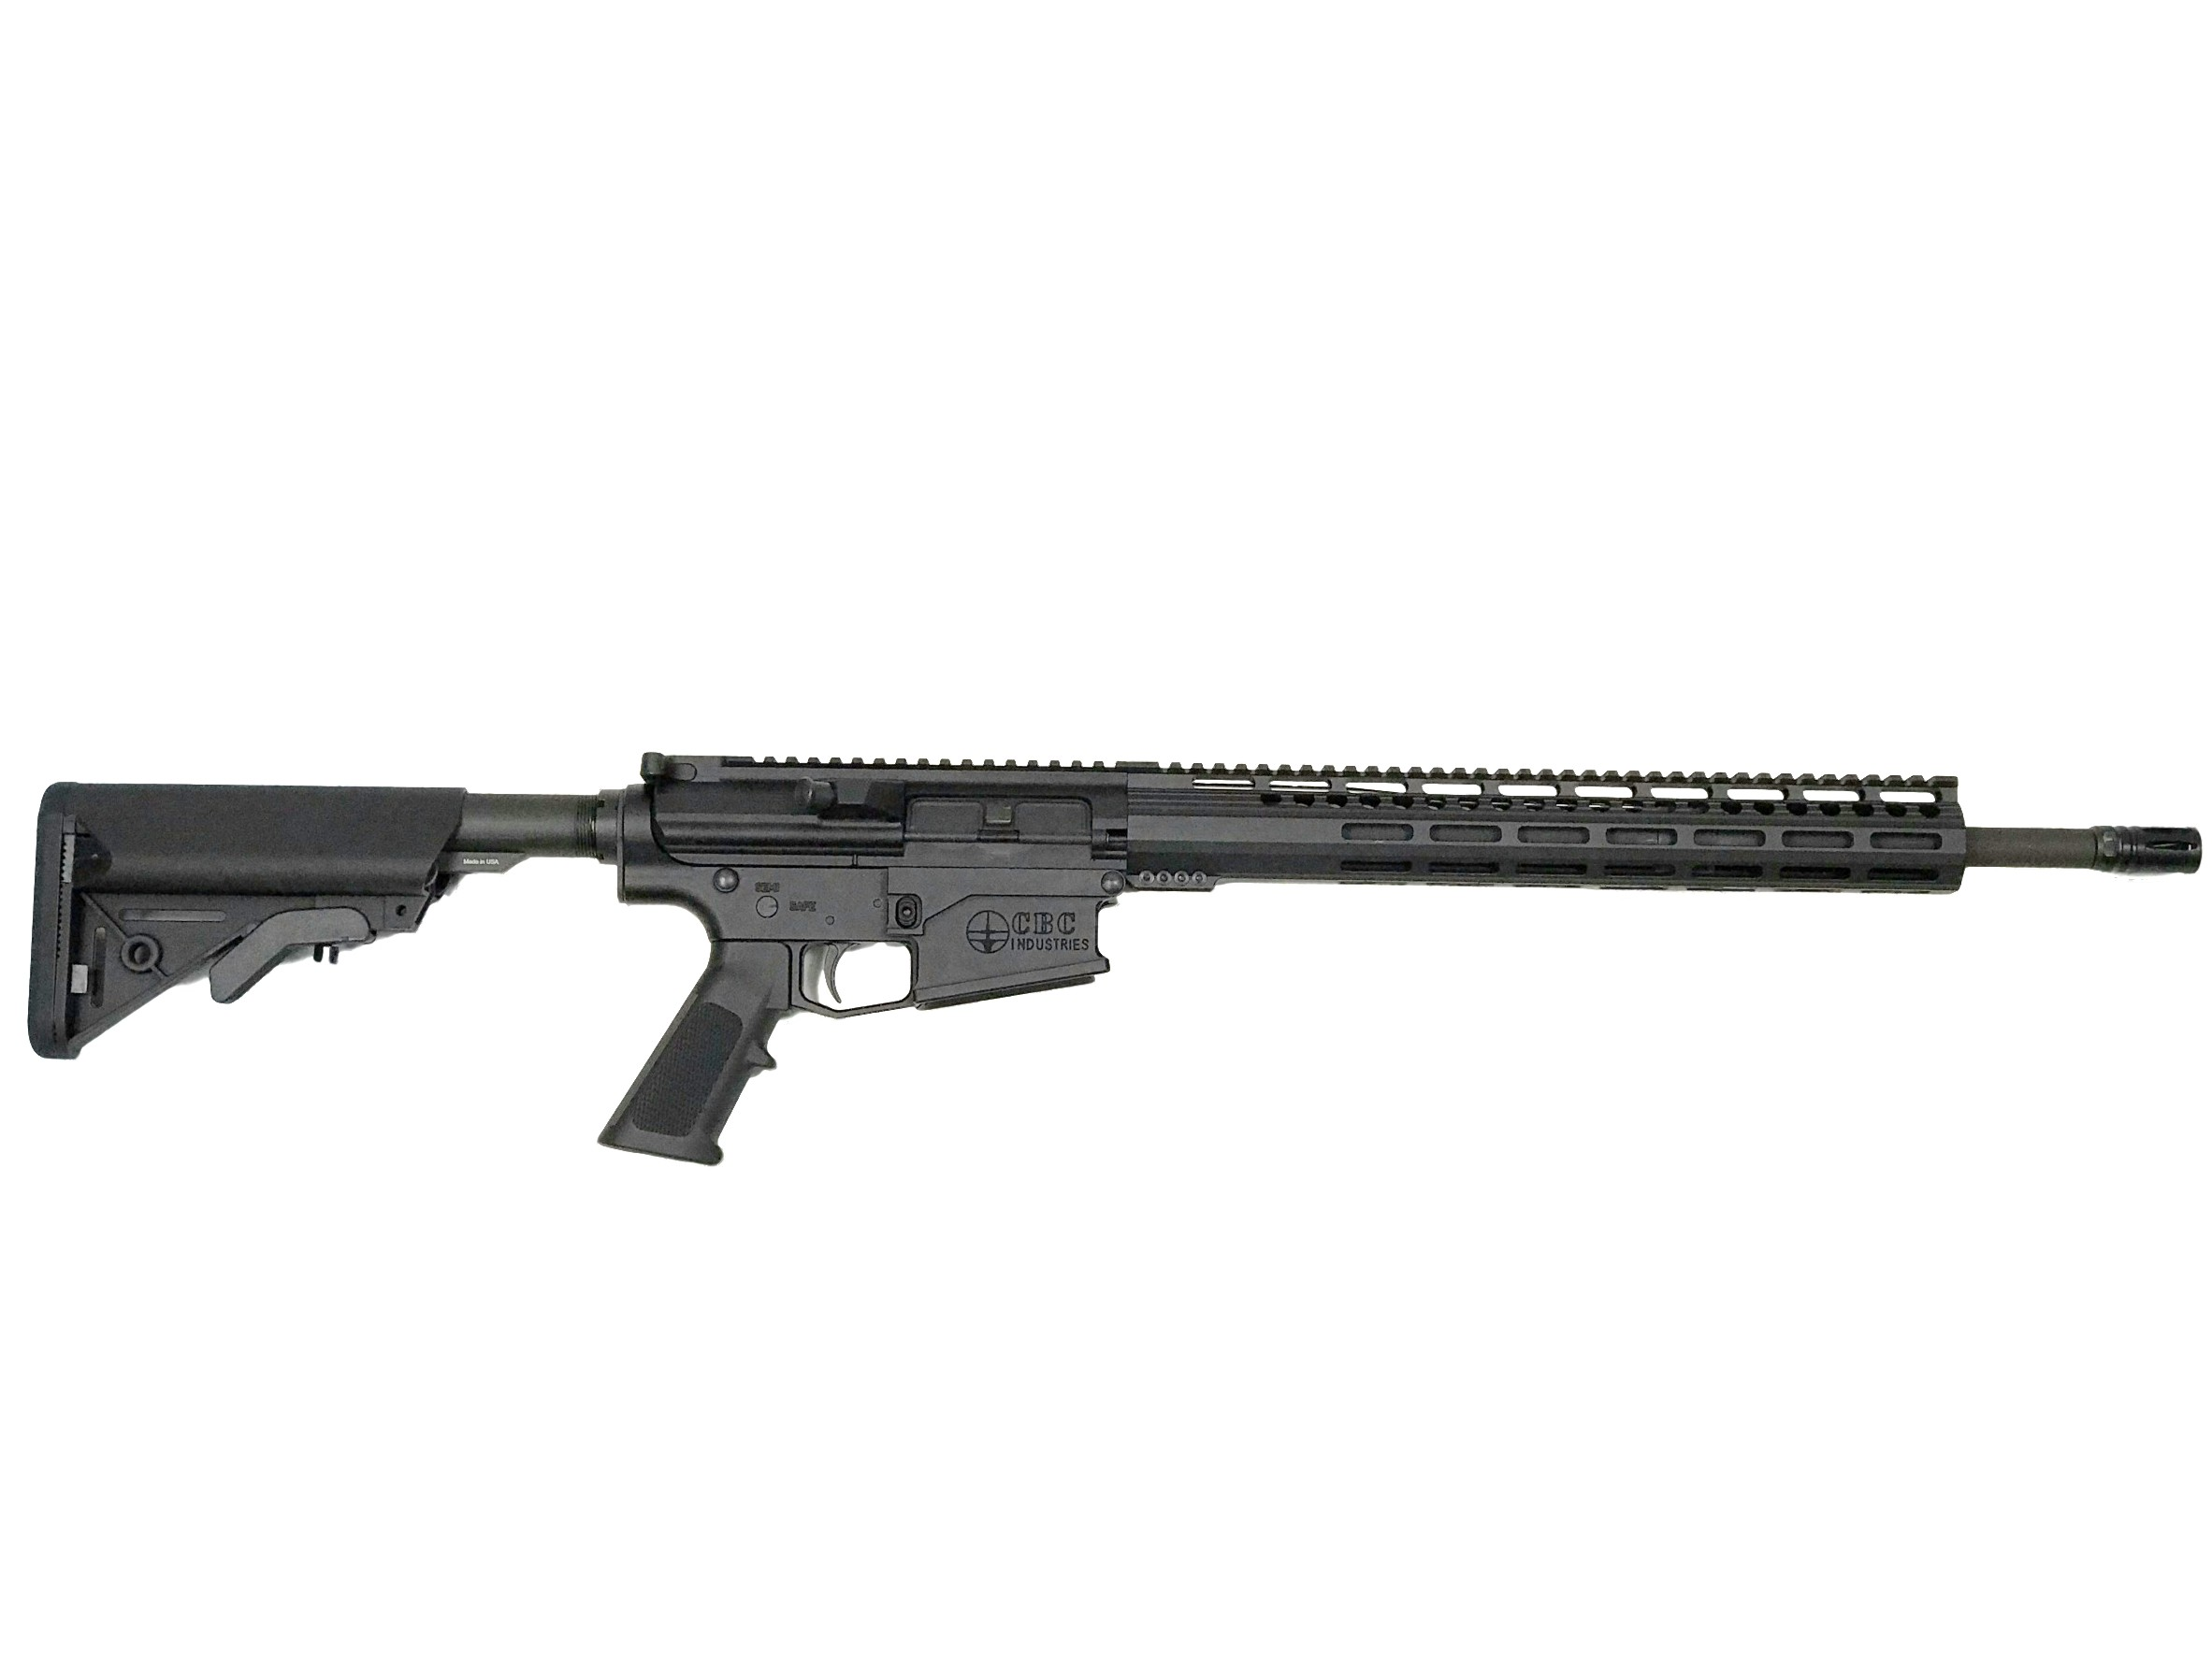 cbc ar 308 complete rifle 16 with 15 cbc arms m lock hand guard